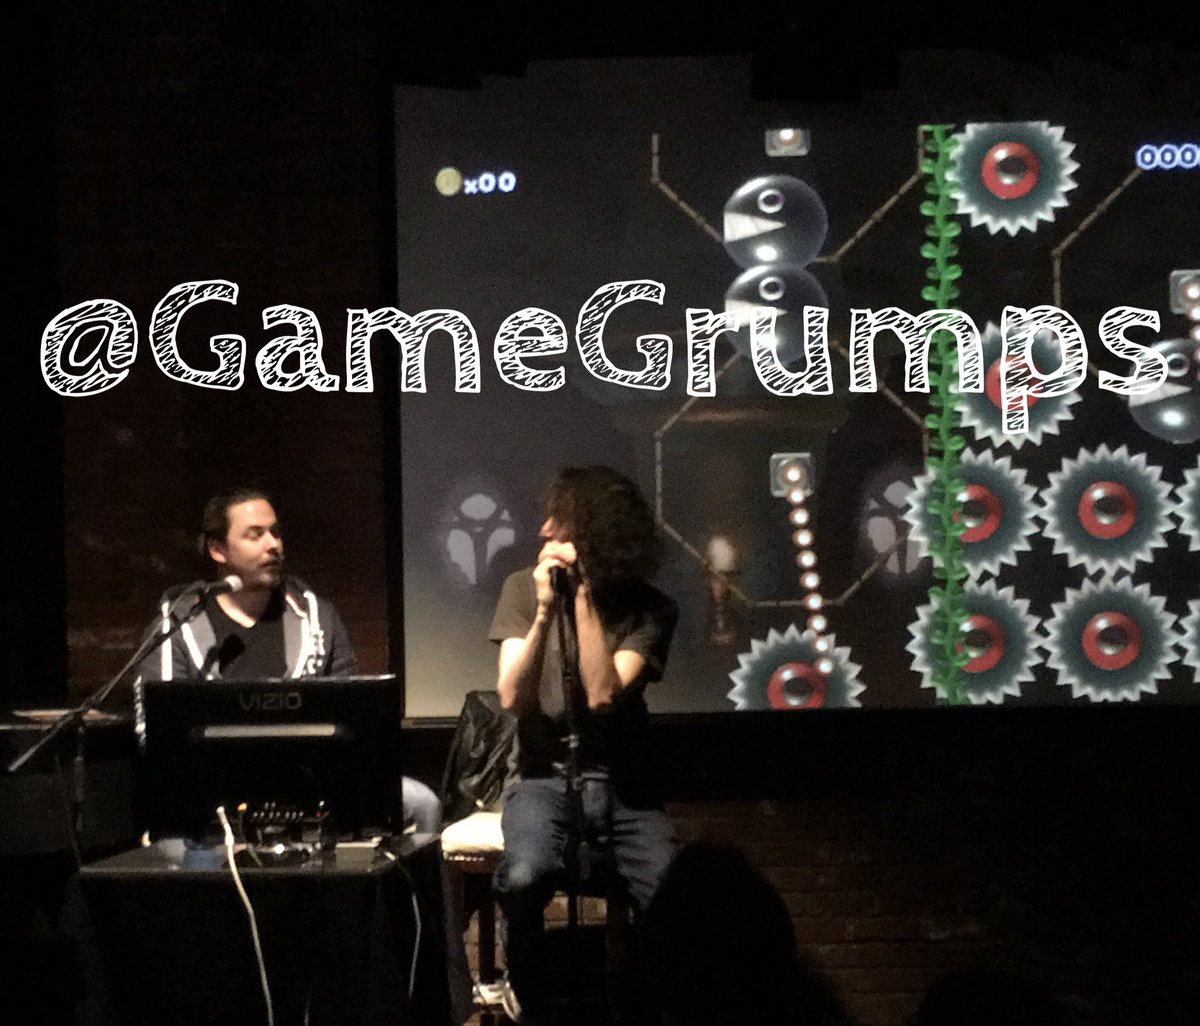 .@GameGrumps ELECTRIC LIVE GAMING @HollywoodImprov!!! https://t.co/FTgBCF4dkG